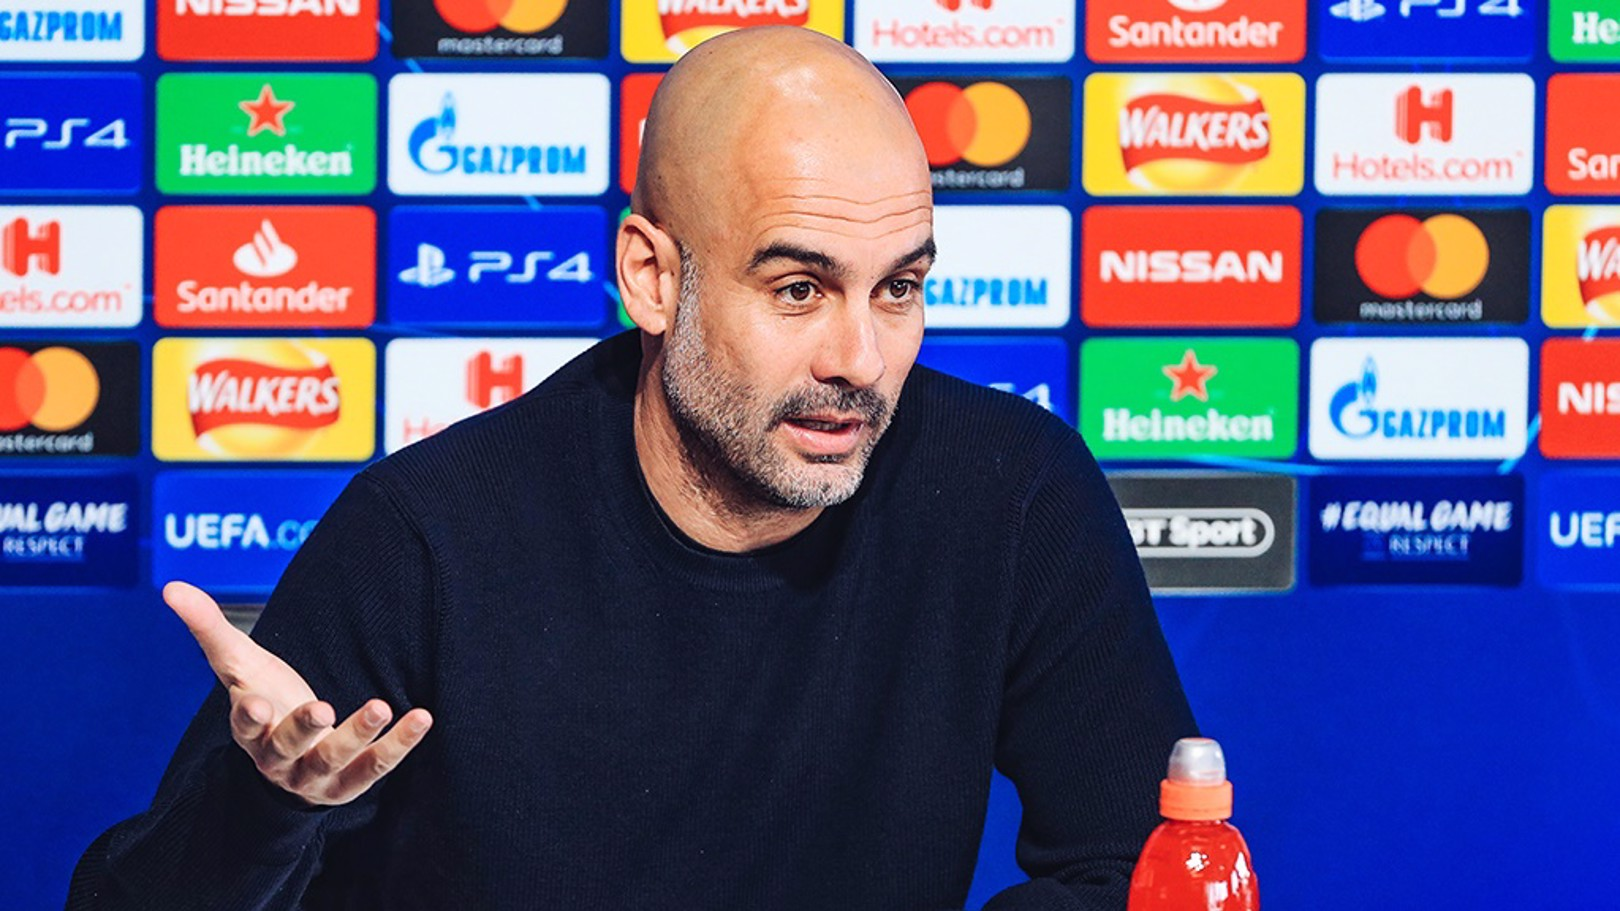 PEP: Looks ahead to Schalke tesr